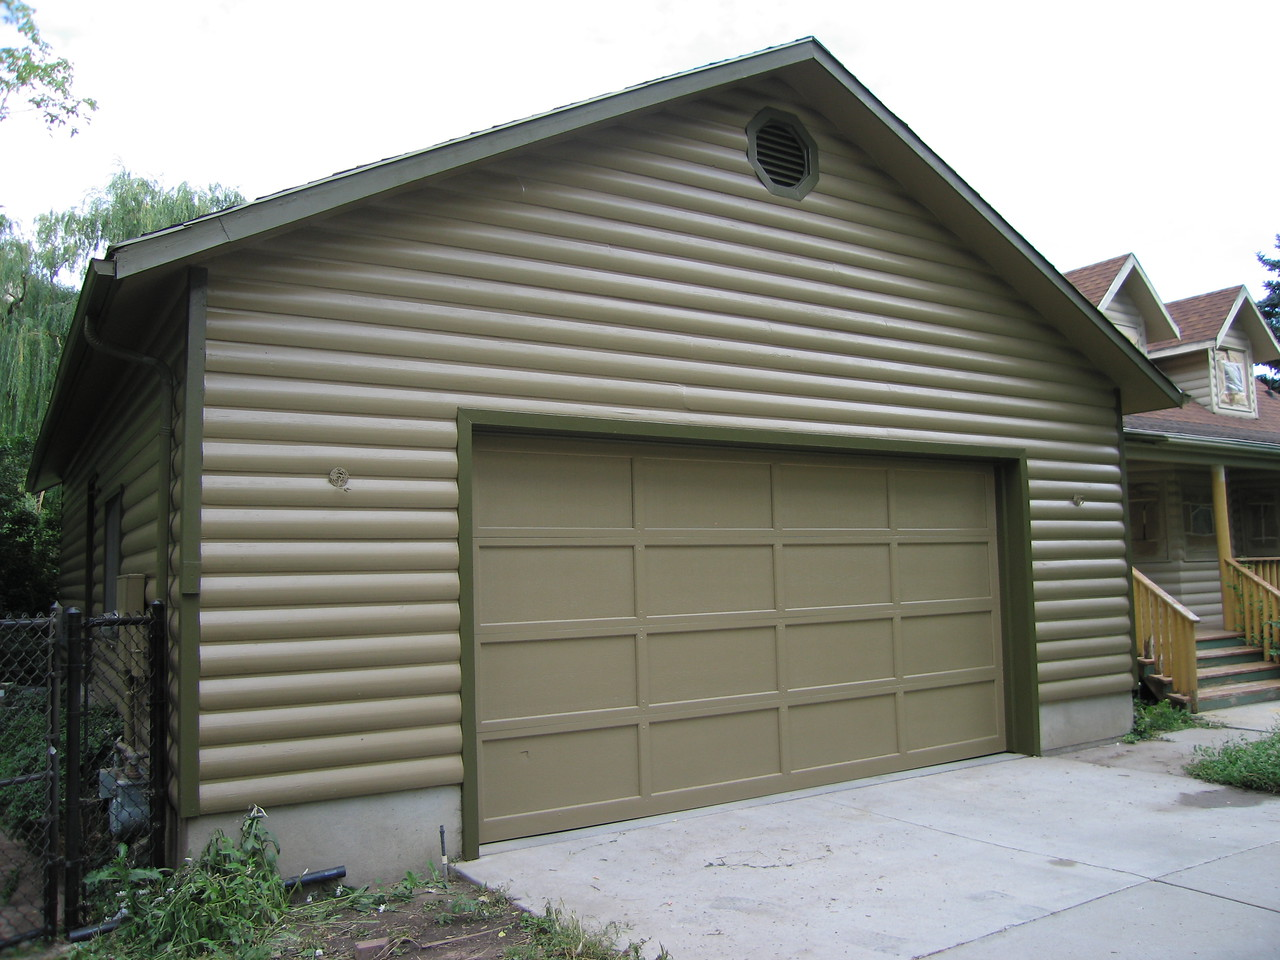 The front of the garage is also finished.